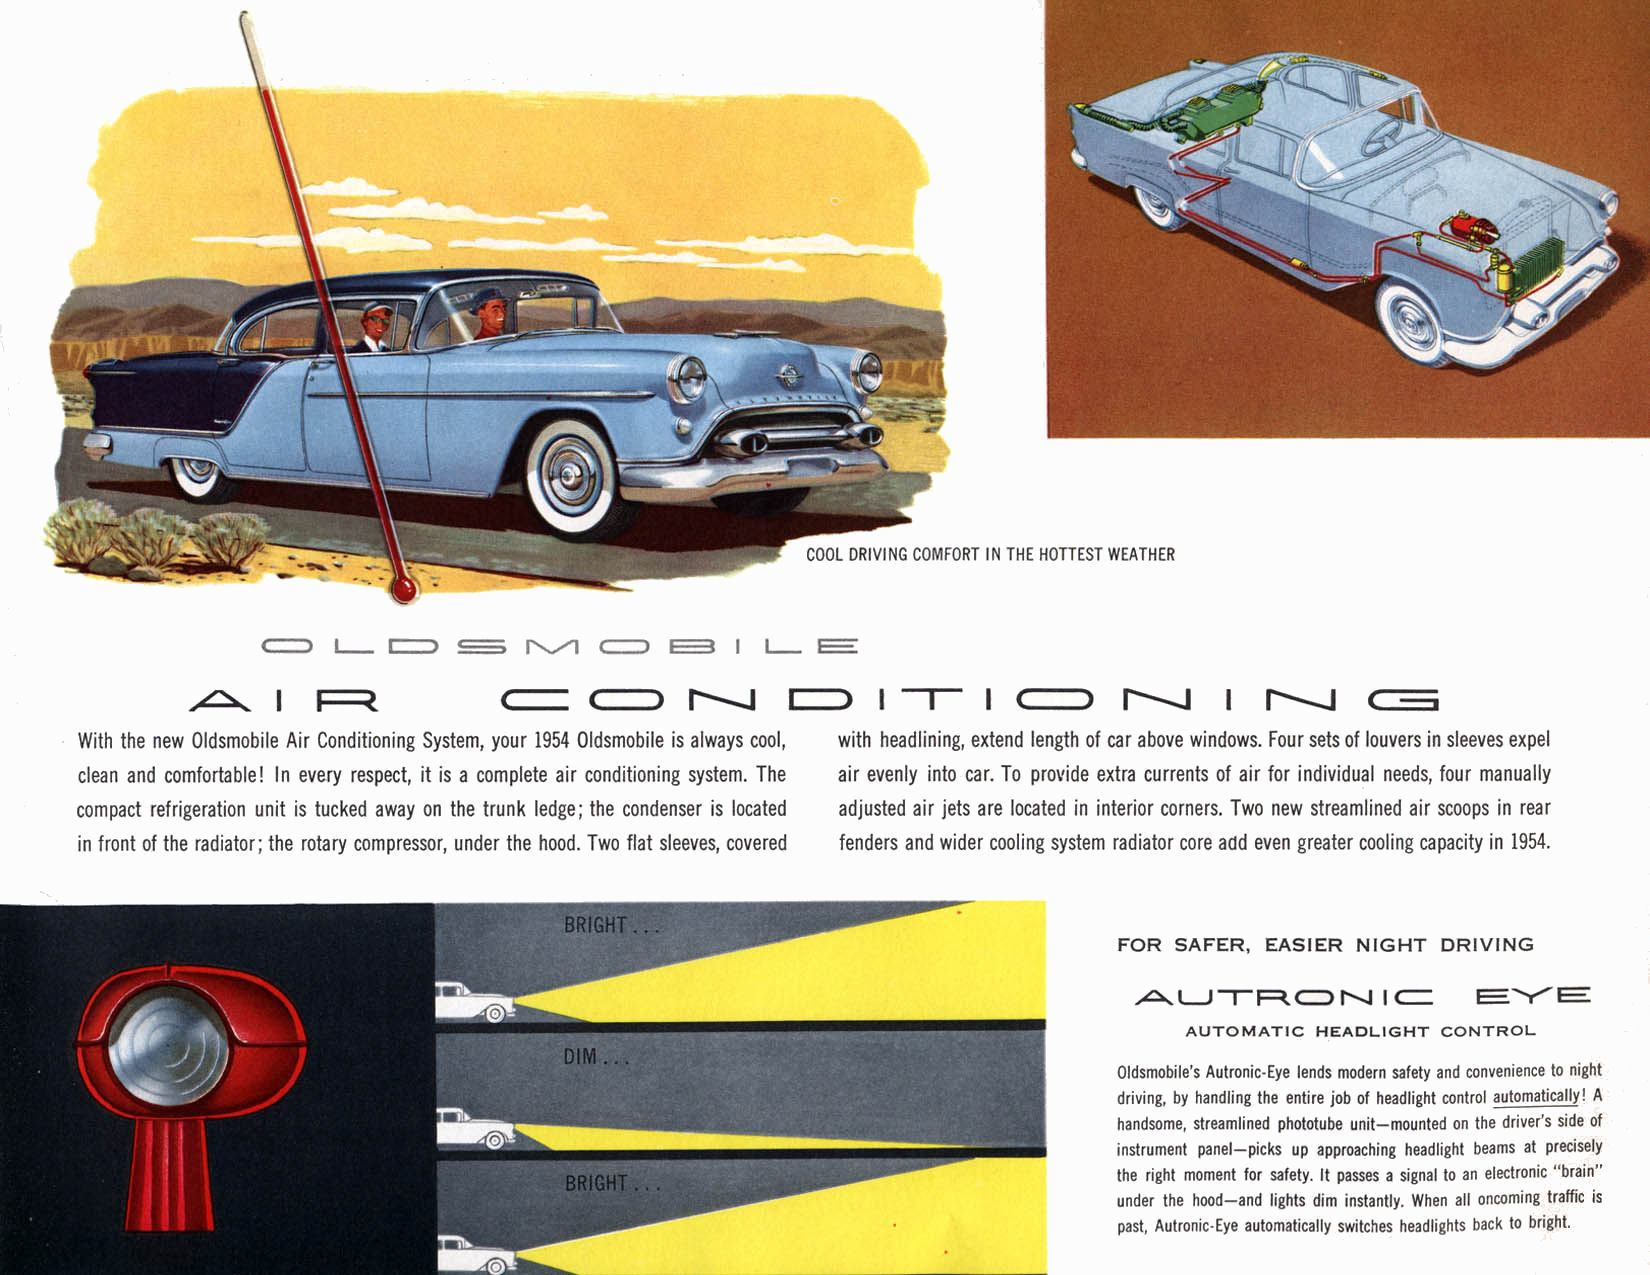 I Spotted An Insert Obscure Car Name Here Classic Today Auto Air Conditioning Wiring Diagram For 1954 Was Available The Rocket Engine Up To 185 Horsepower And Think Oldsmobile Had Better Visibility Than Probably Any You